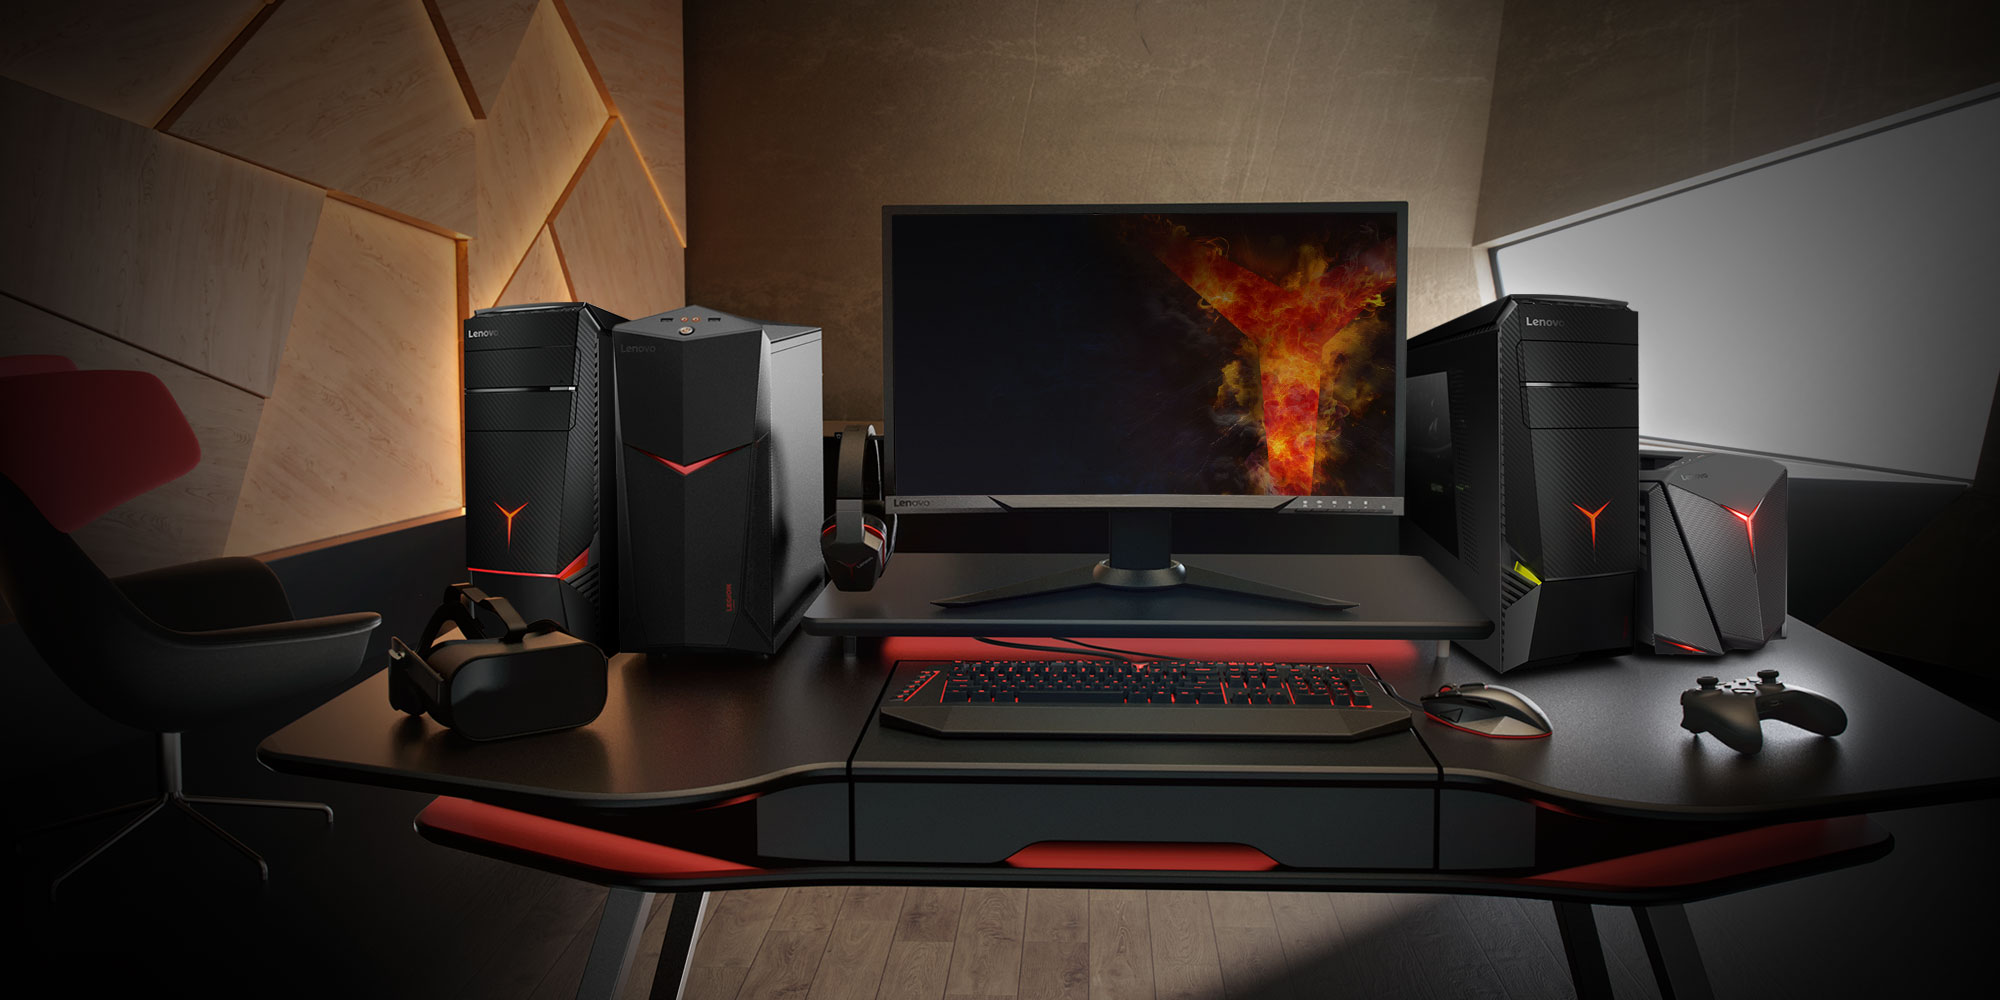 Lenovo gaming towerek és gaming monitor